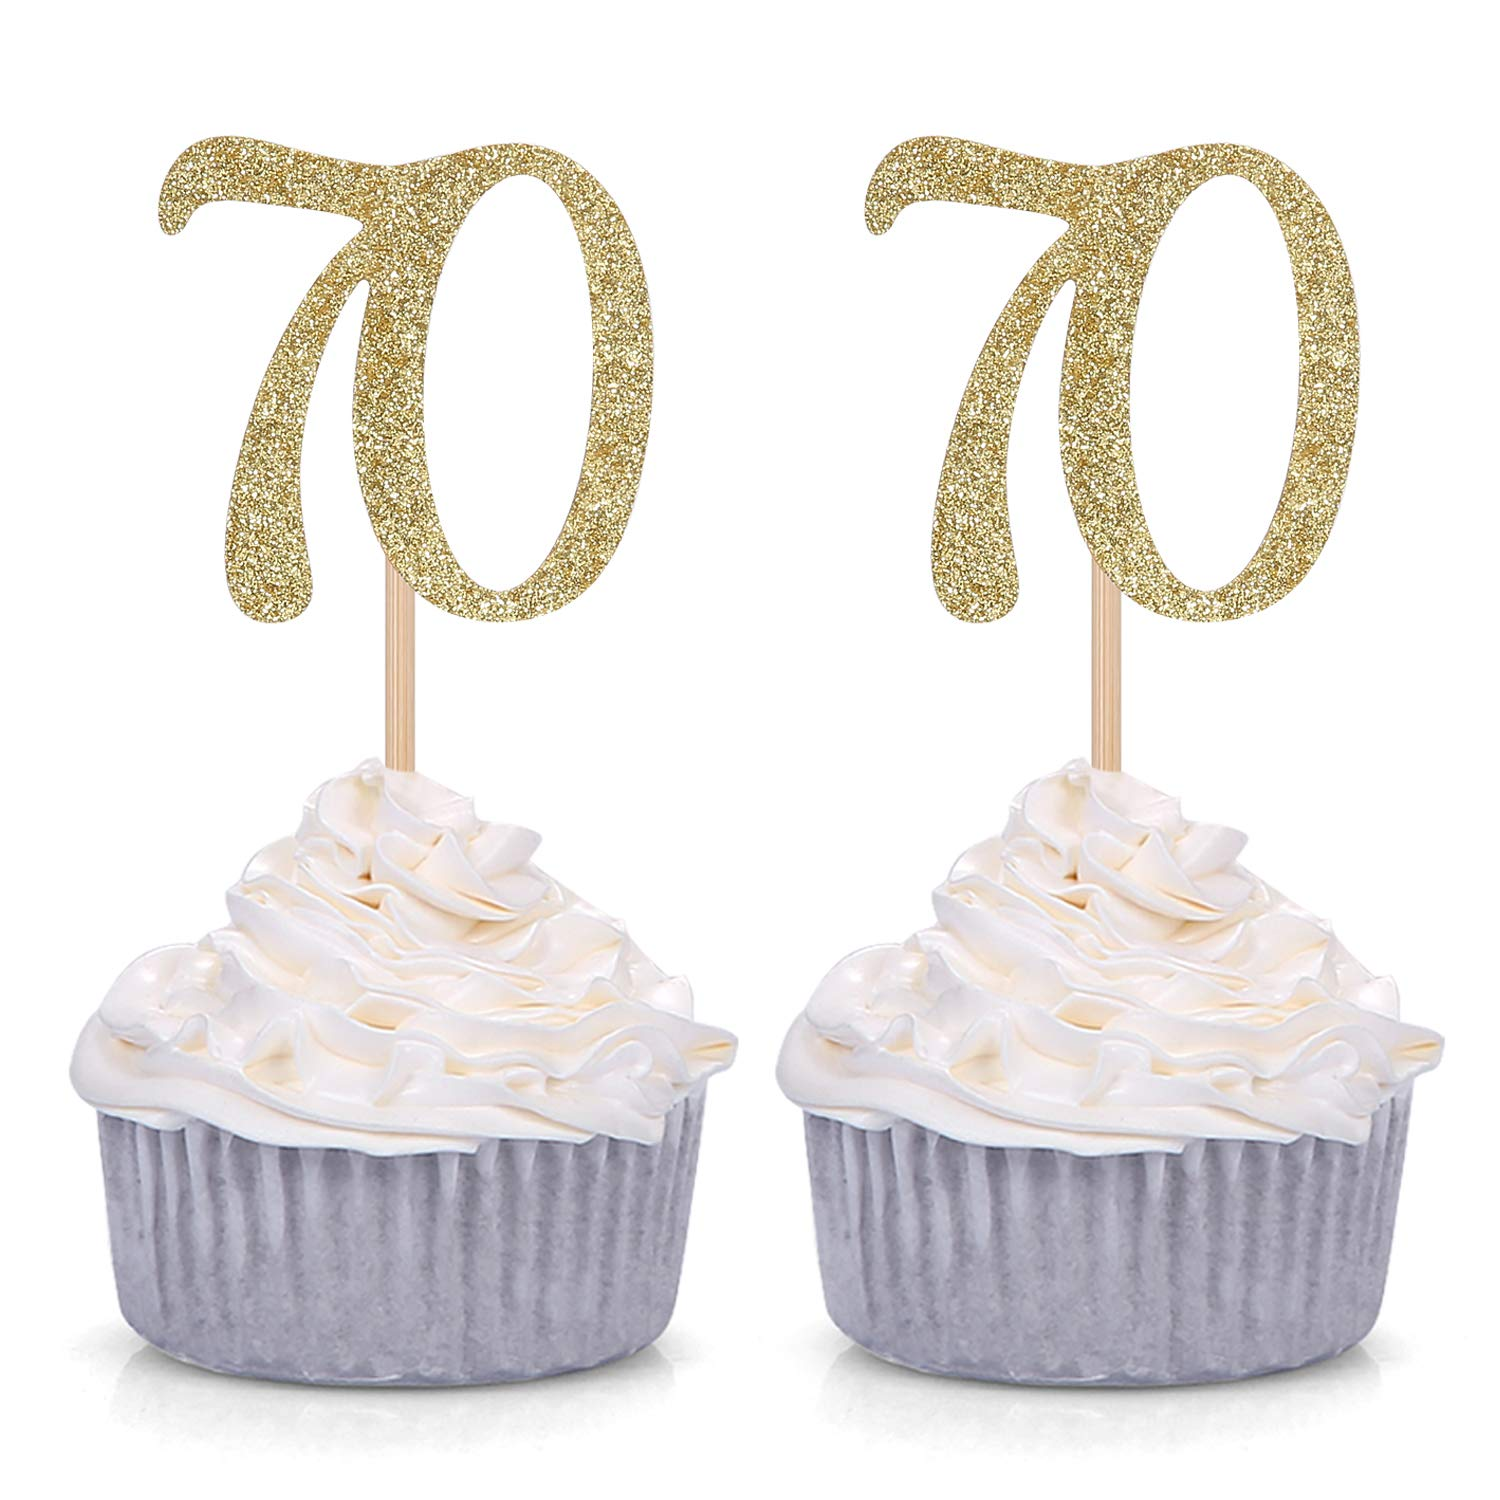 24 X HAPPY BIRTHDAY 70TH COLOURFUL AGE 70 EDIBLE CUPCAKE TOPPERS RICE PAPER C798